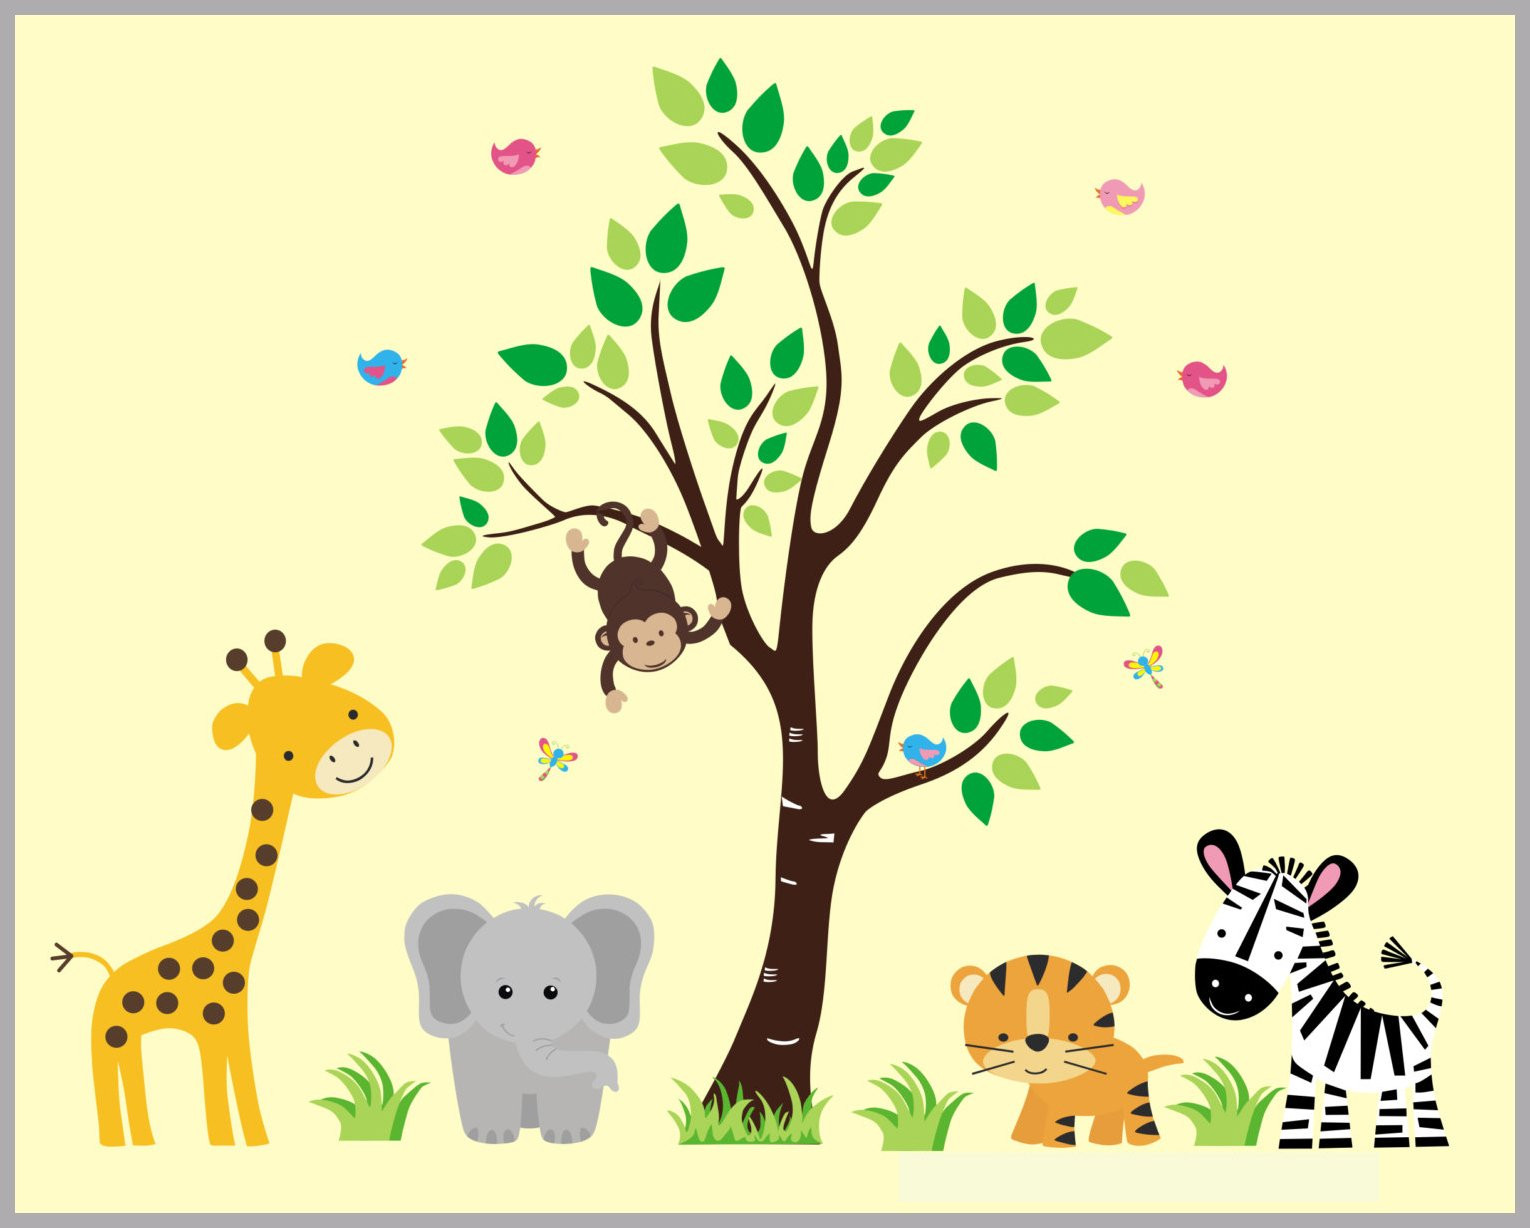 Nursery Wall Decals - Wall Decals Nursery - Safari Animal Decals ...